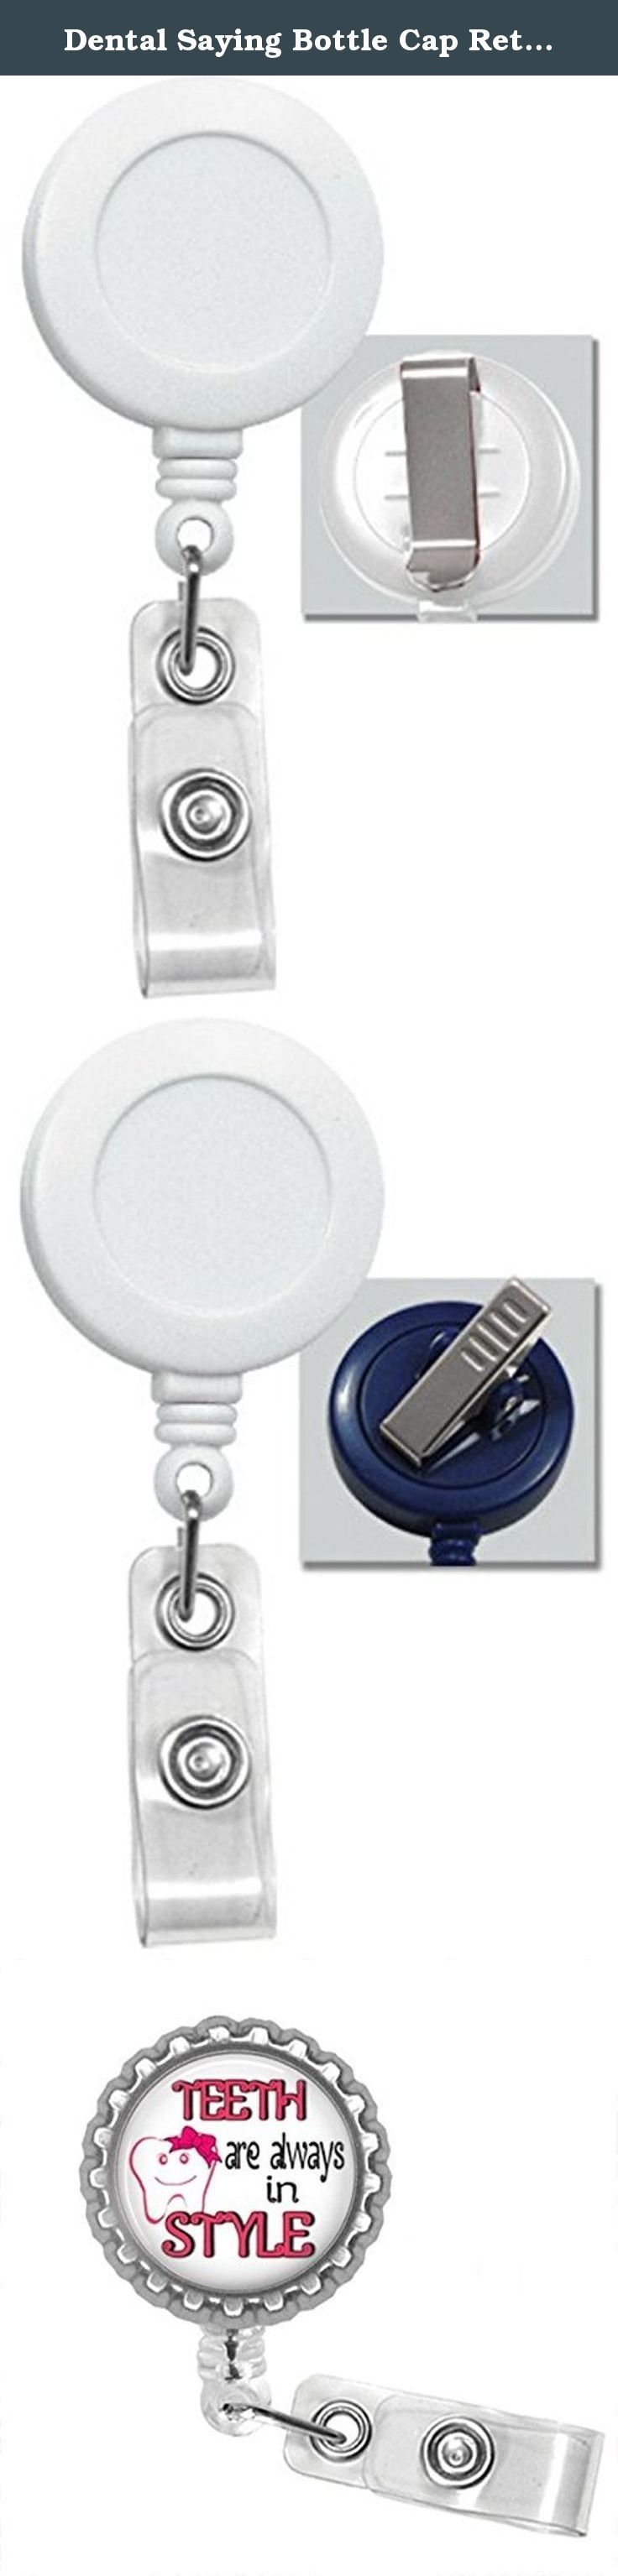 Dental Saying Bottle Cap Retractable Badge ID Holder. Dental saying bottlecap badge reel is a great item to hang your work or school Id's from. Badge is 1.25 in diameter. The badge also is a Retractable badge with your choice of either a clip or a swivel alligator clip Pictures 2 is a slide clip picture 3 is an alligator clip. The retractable cord is 24 inches Teeth are always in Style. The color of the badge reel is white.